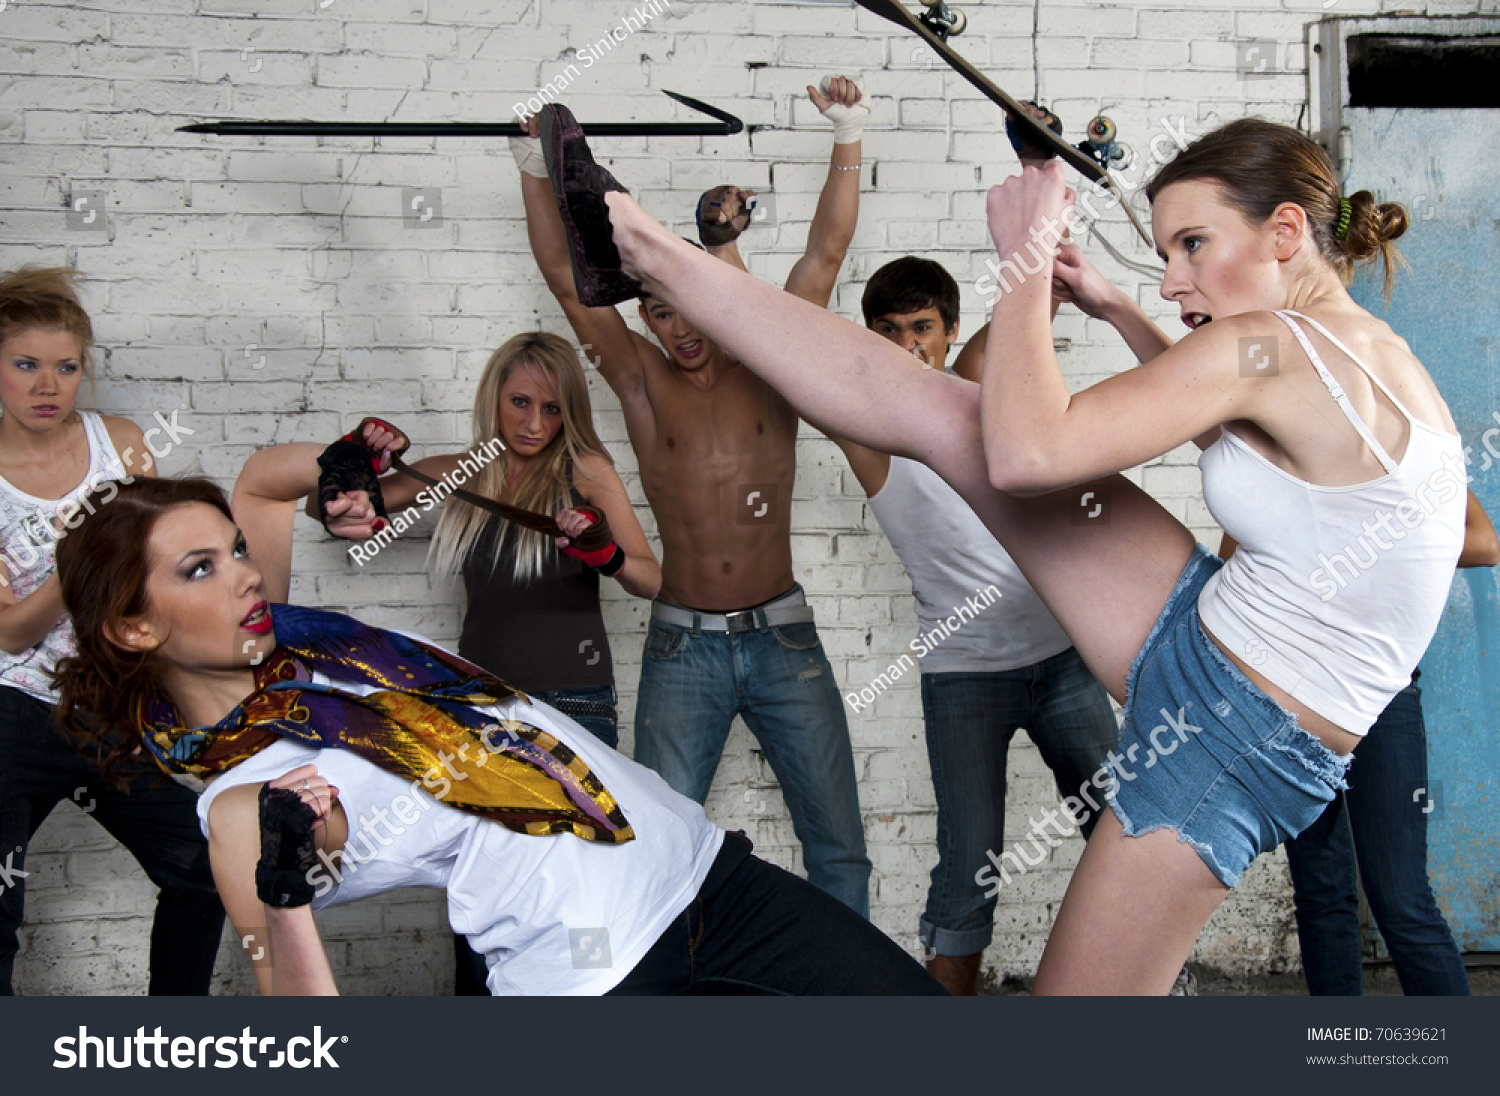 girls fighting on street